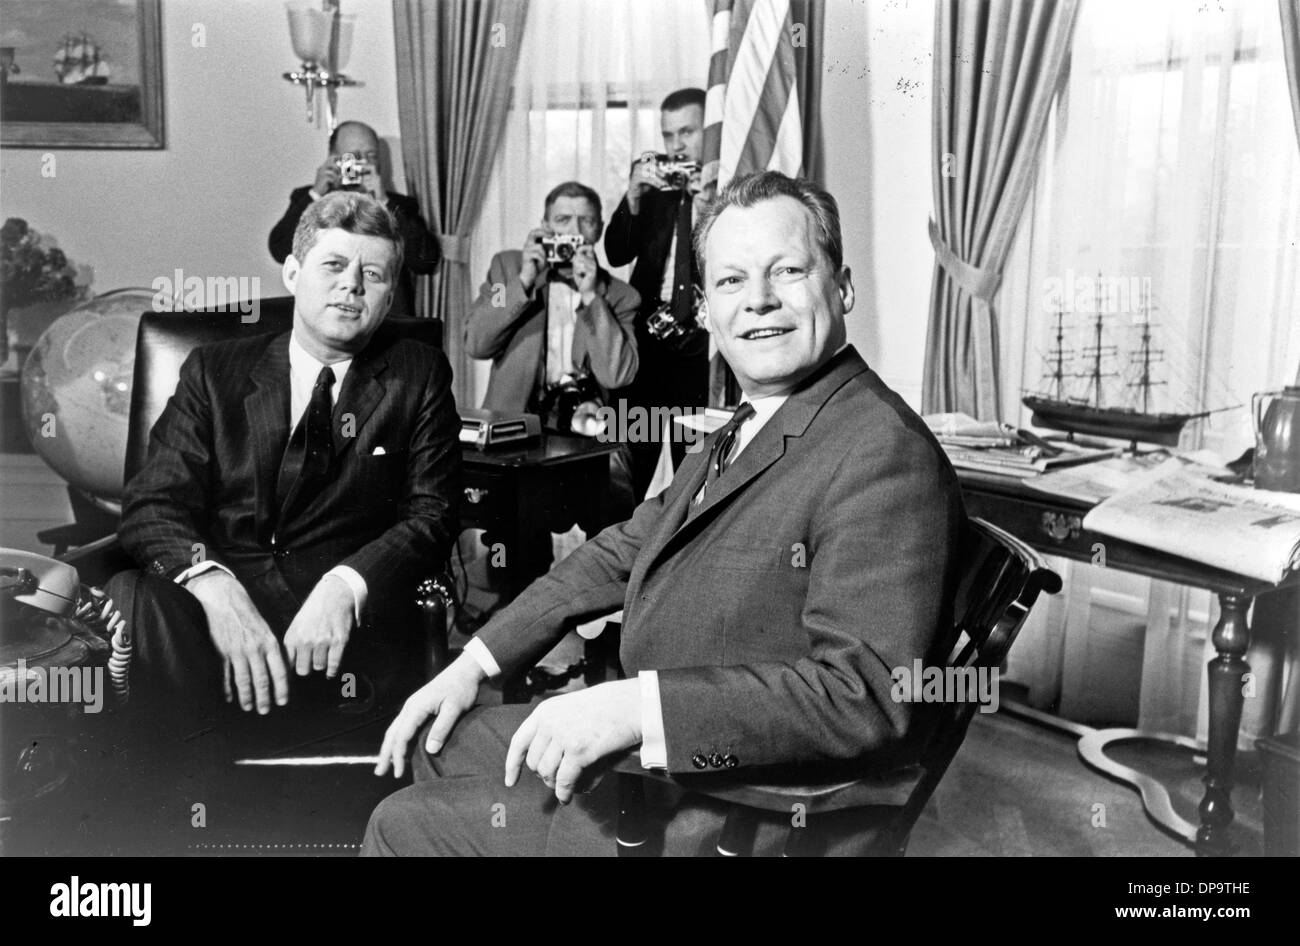 John F. Kennedy meeting with German statesman and politician Willy Brandt at the White House. - Stock Image